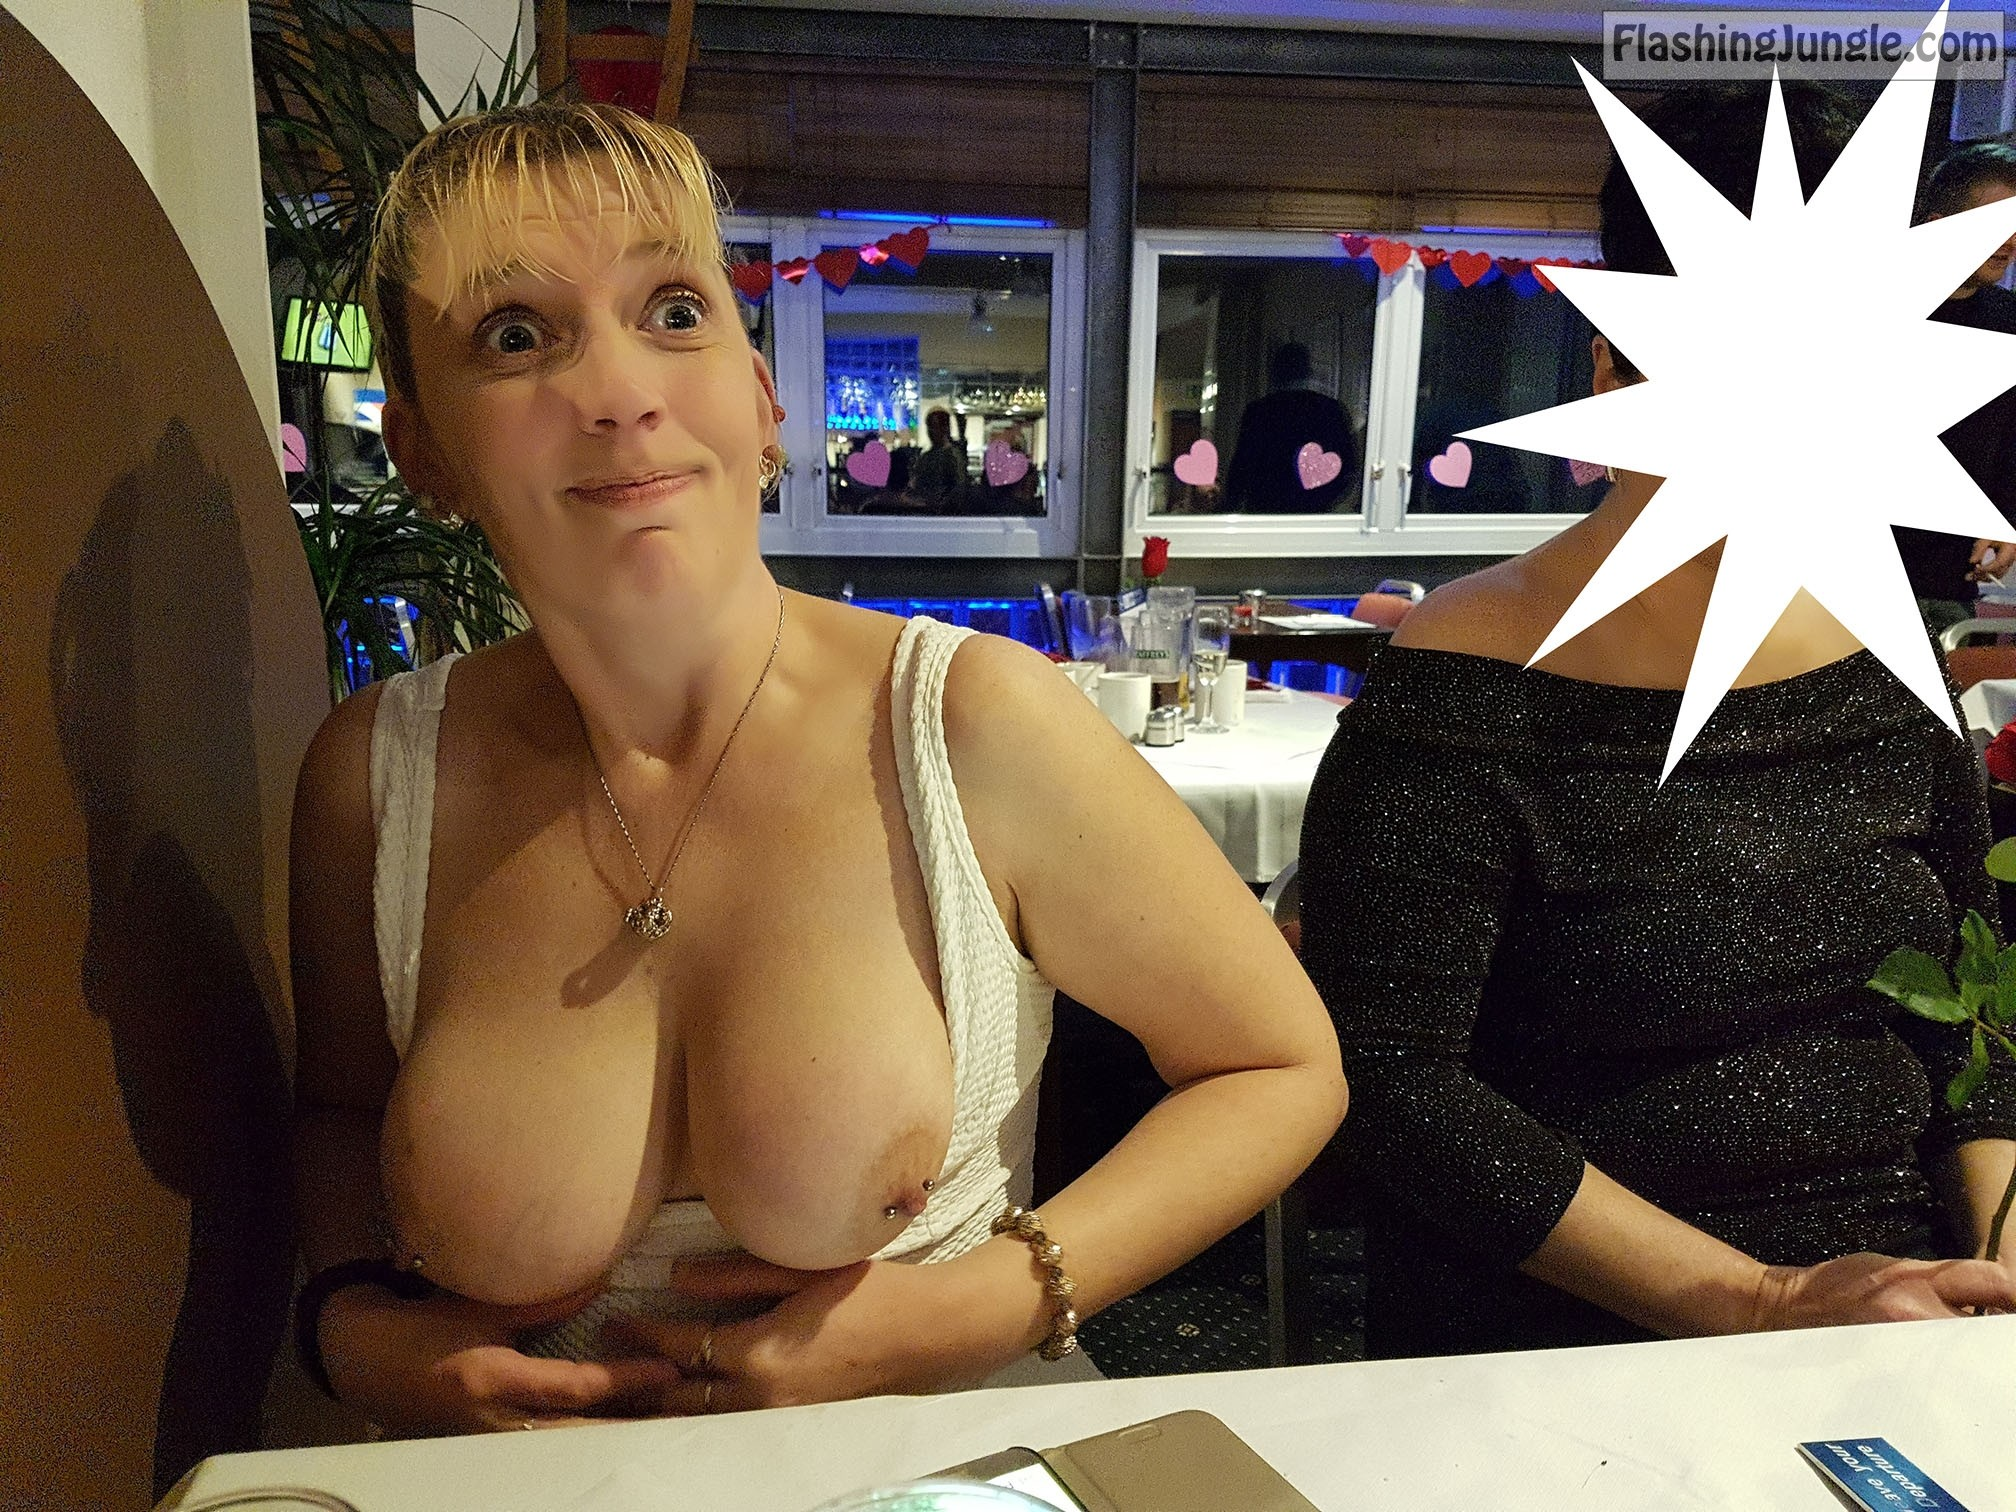 Flashing tits for friend's husband in restaurant - KittyD